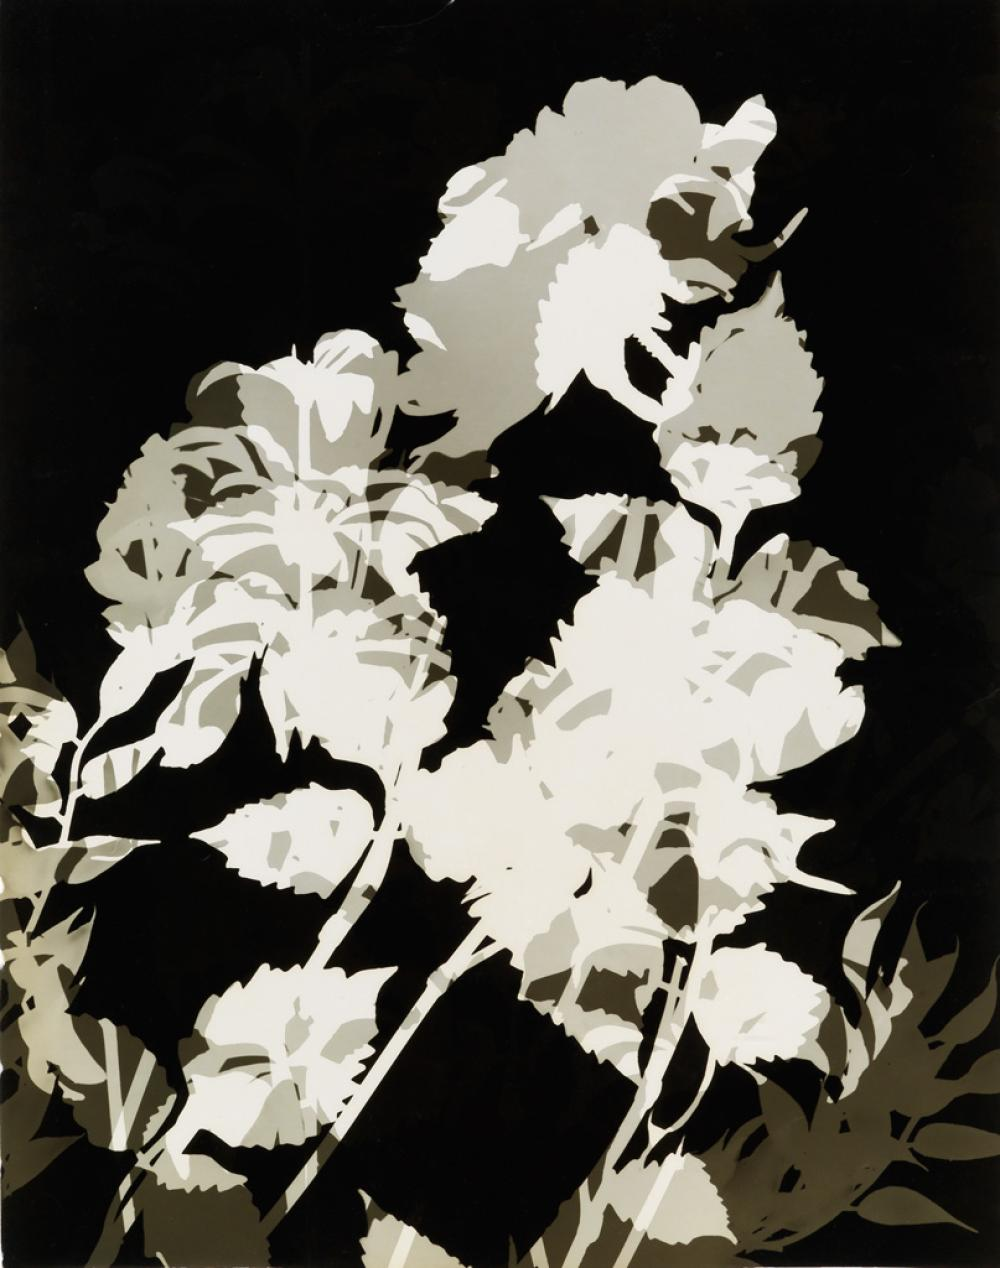 (PHOTOGRAMS) Group of 8 abstracted photograms of cut-out paper flowers.